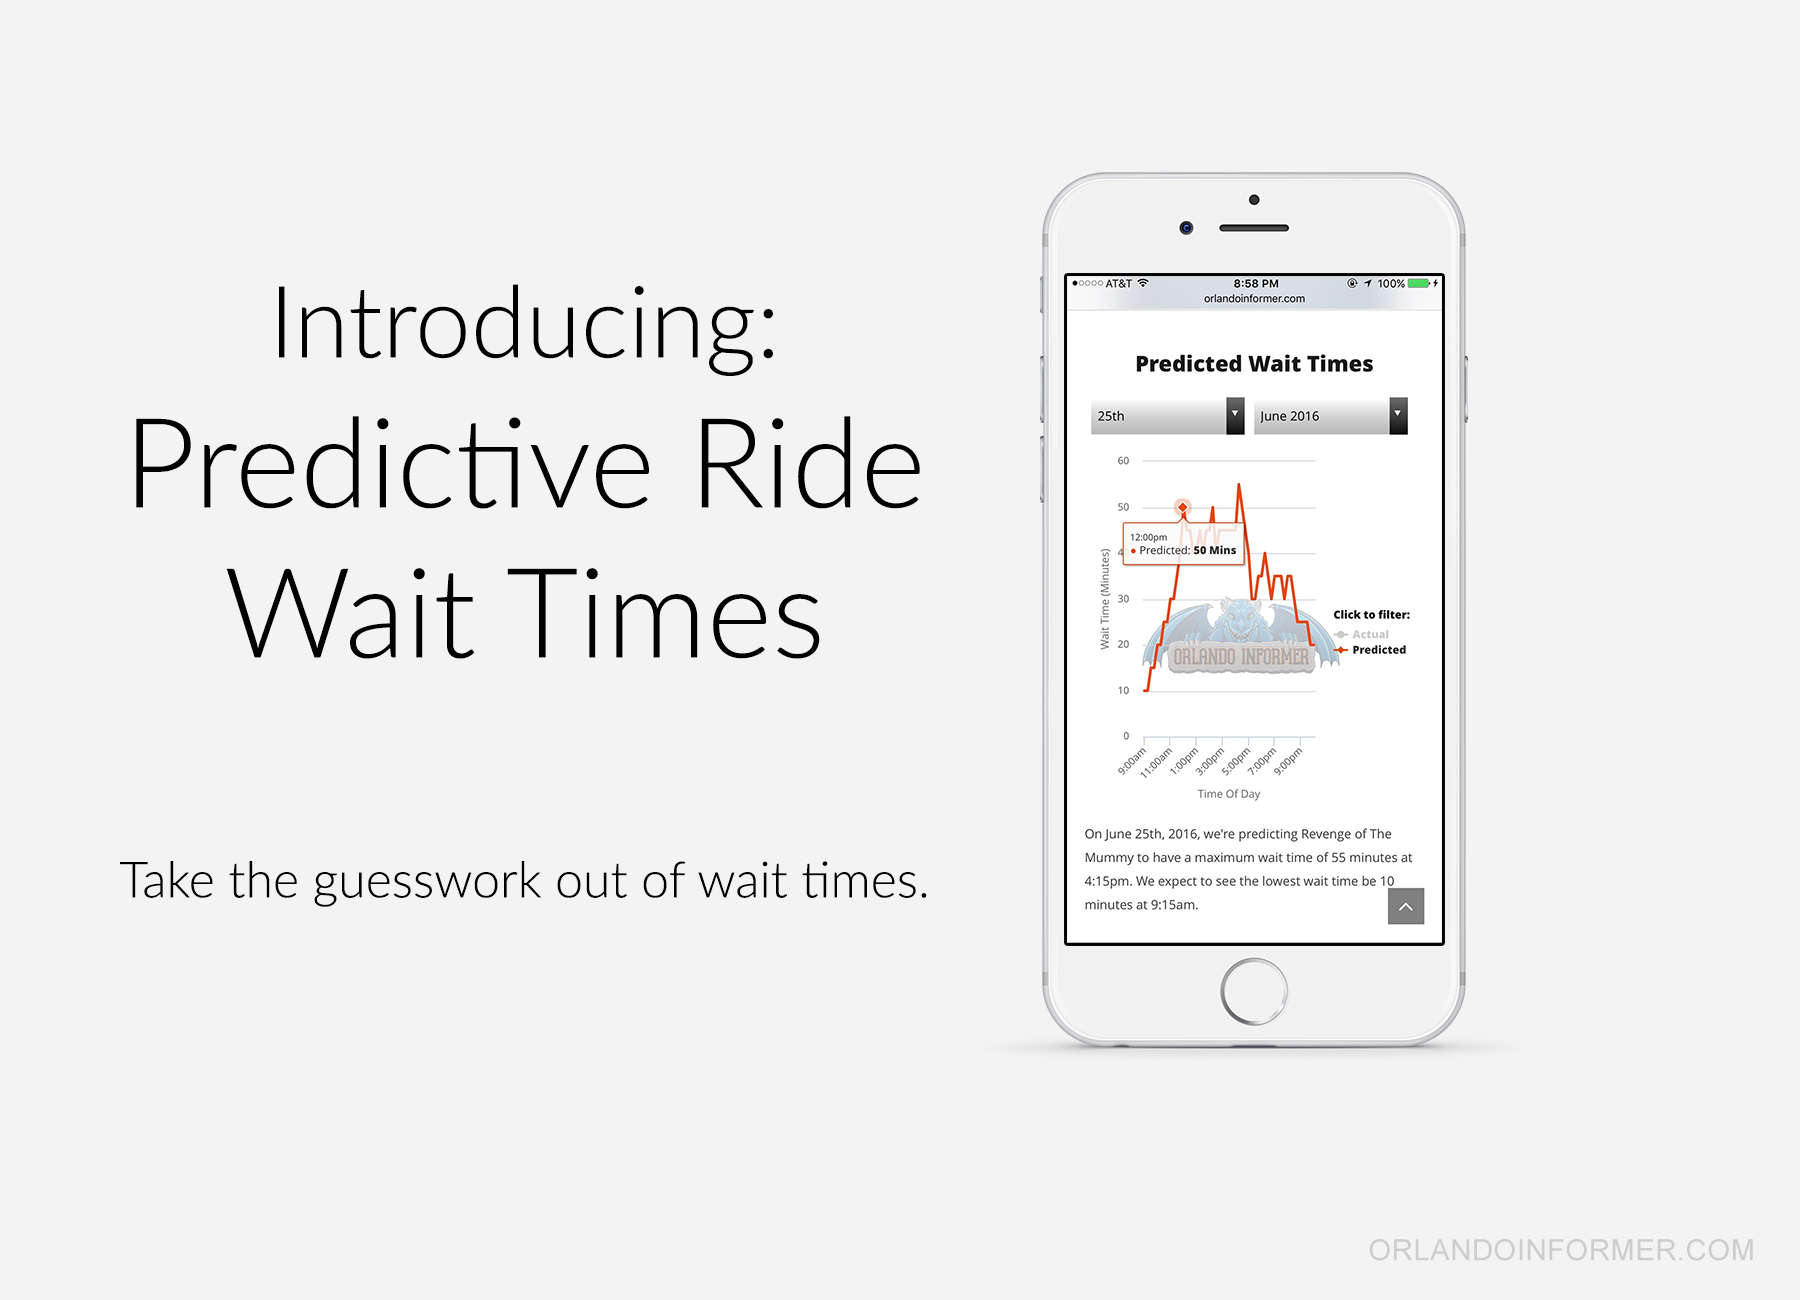 Predictive ride wait times are now on OrlandoInformer.com